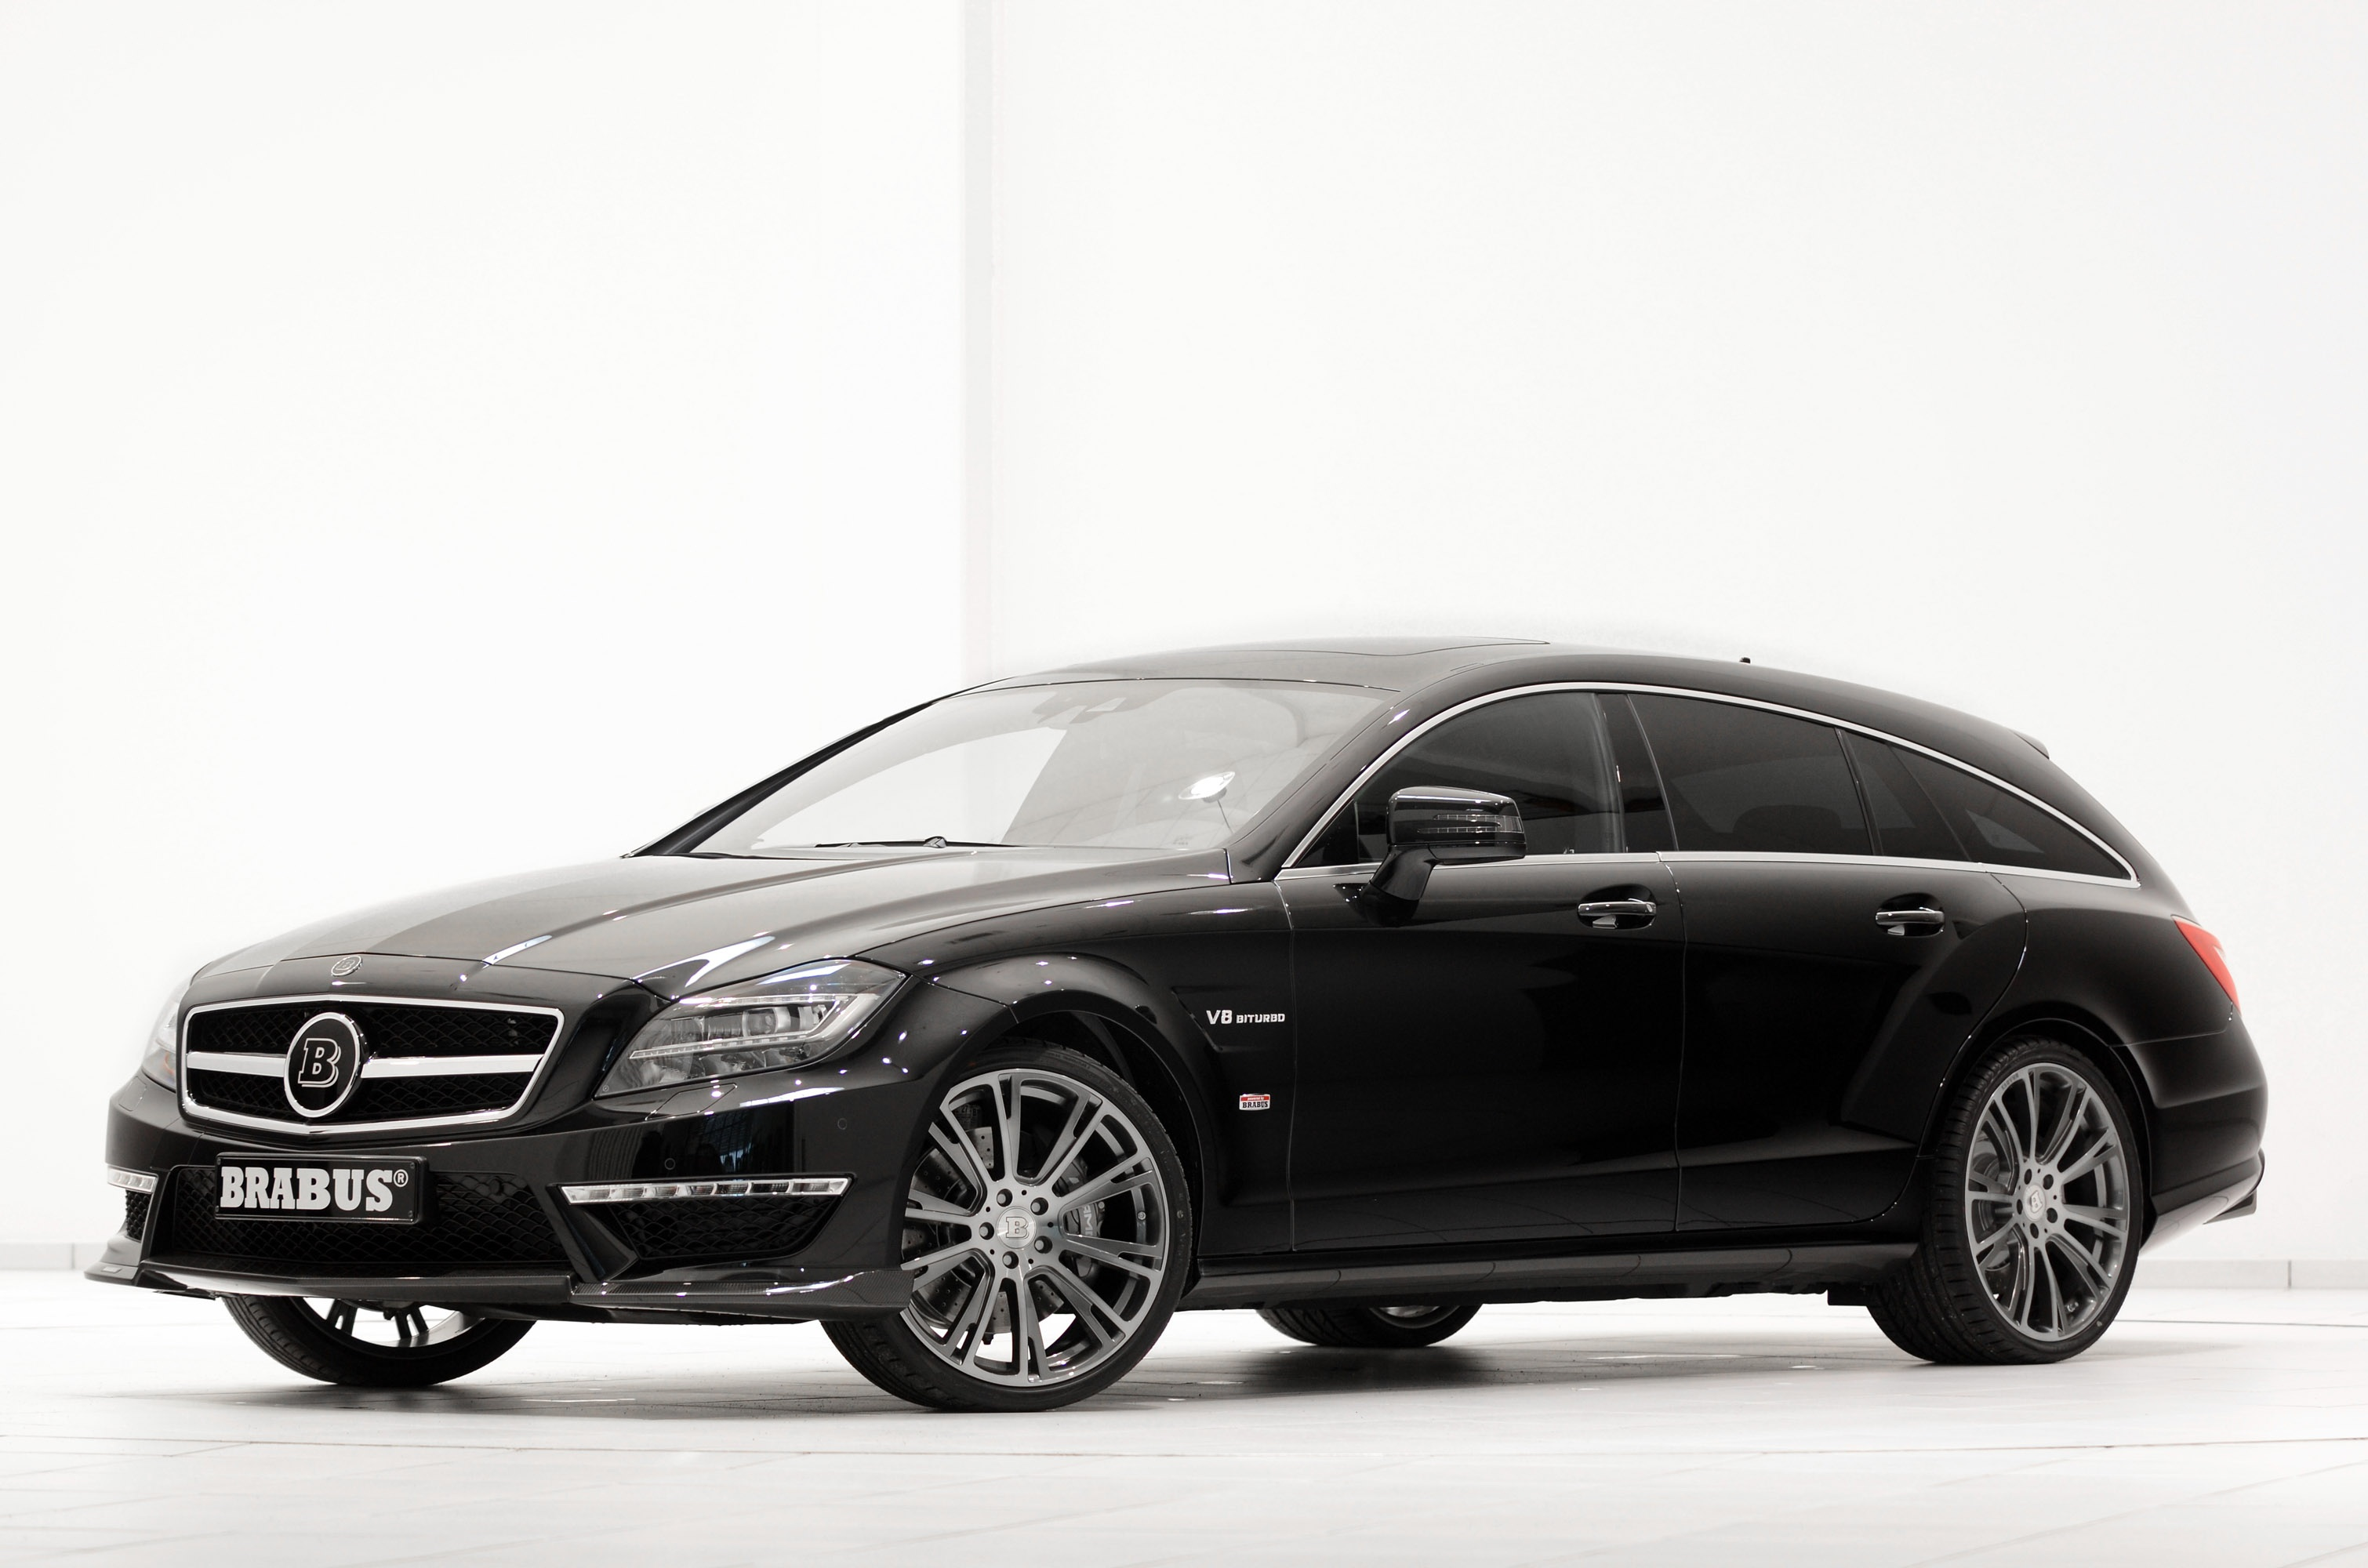 2013 mercedes cls63 amg b63s 730 by brabus top speed. Black Bedroom Furniture Sets. Home Design Ideas